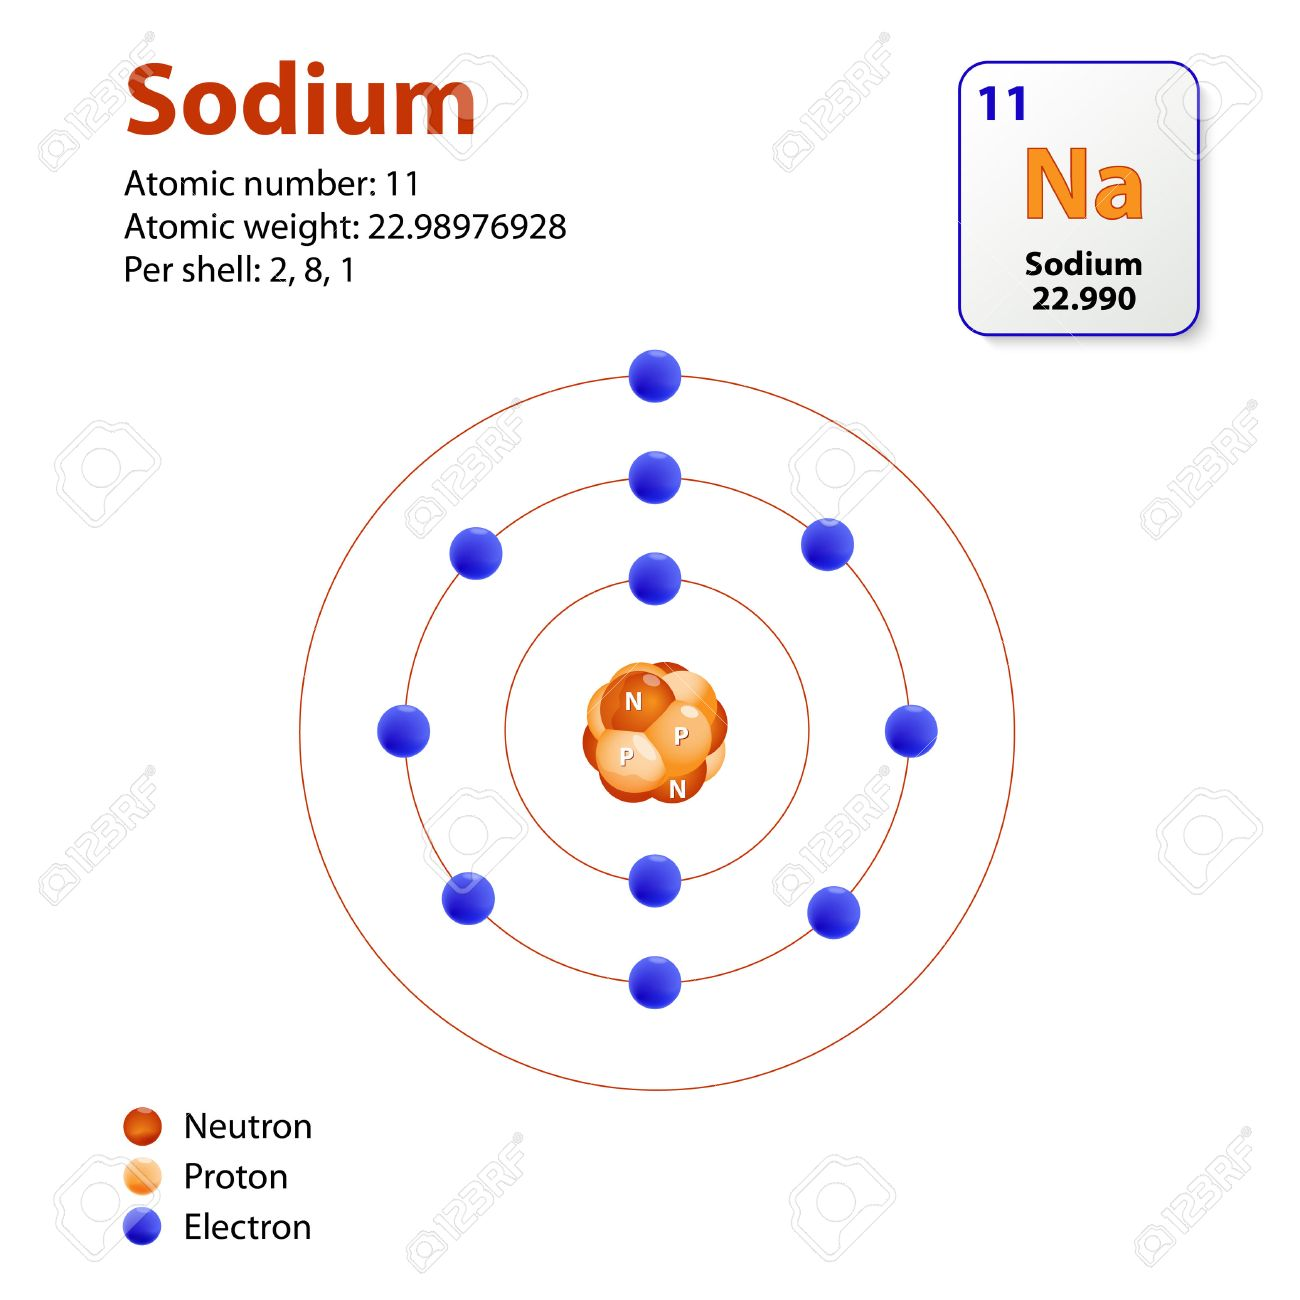 Atom sodium this diagram shows the electron shell configuration atom sodium this diagram shows the electron shell configuration for the sodium atom stock vector pooptronica